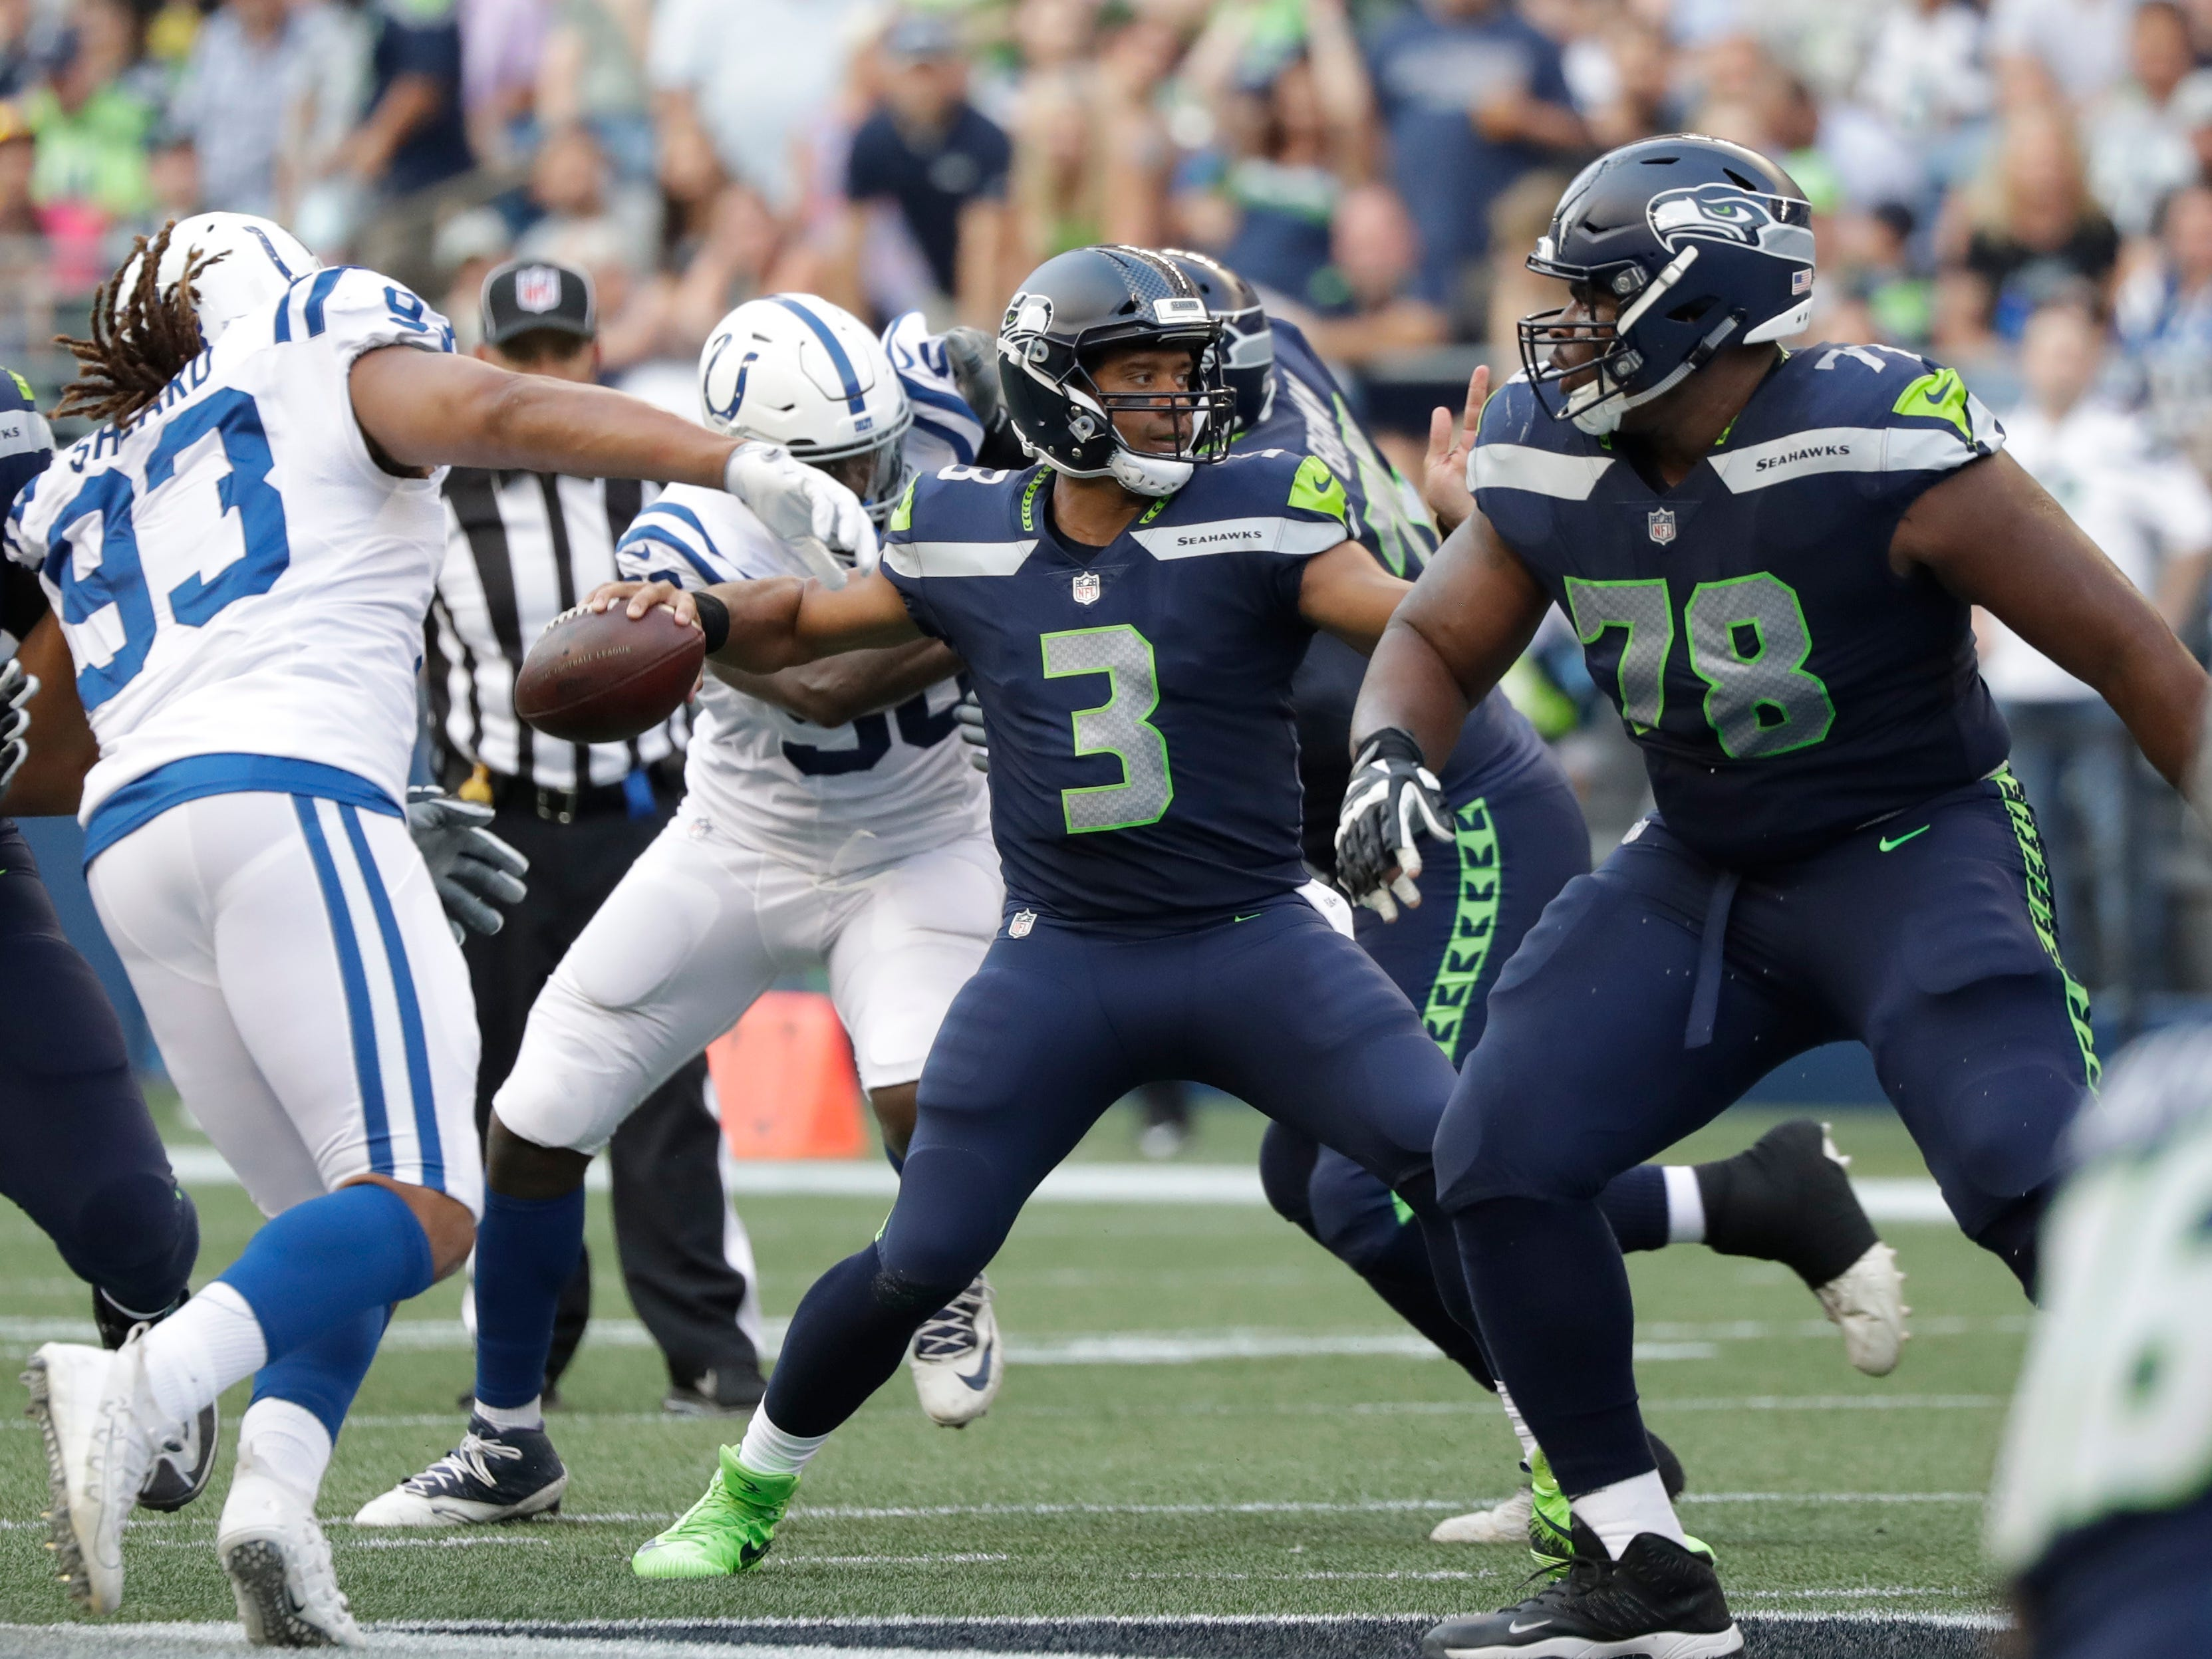 Seattle Seahawks quarterback Russell Wilson (3) passes against the Indianapolis Colts during the first half of an NFL football preseason game, Thursday, Aug. 9, 2018, in Seattle. (AP Photo/Elaine Thompson)